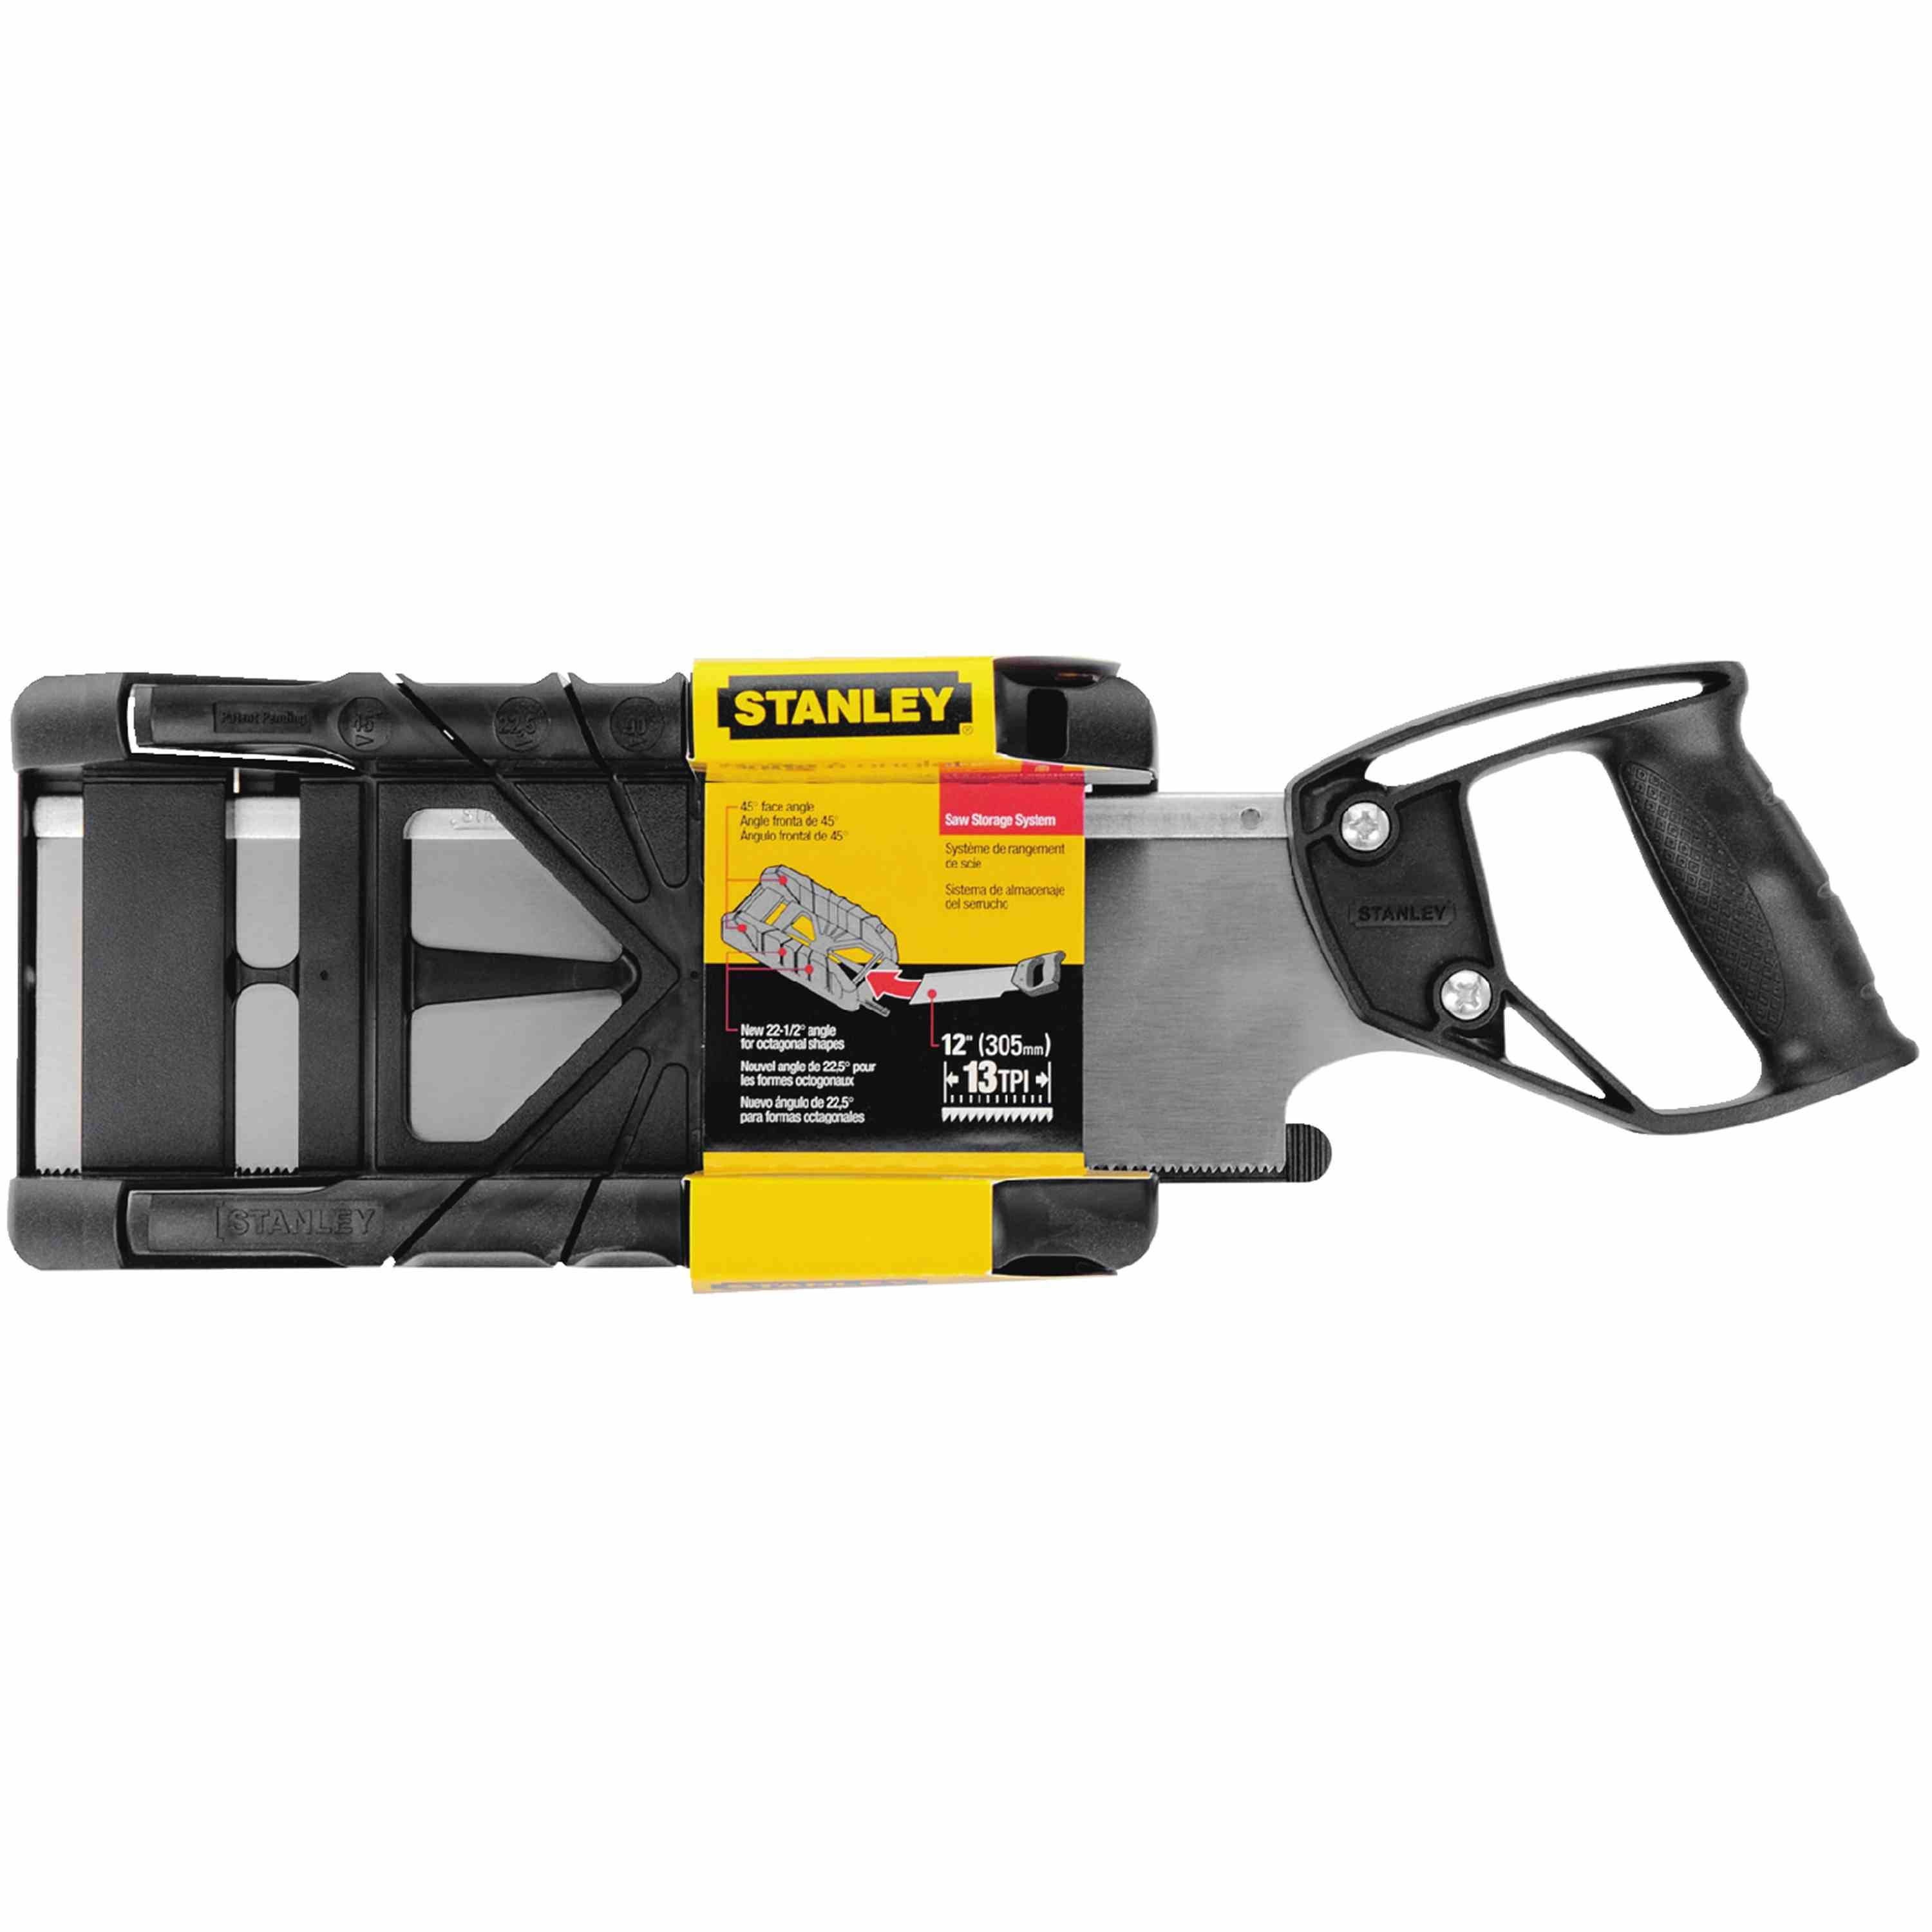 Stanley Tools - Saw Storage Mitre Box With Saw - 19-800